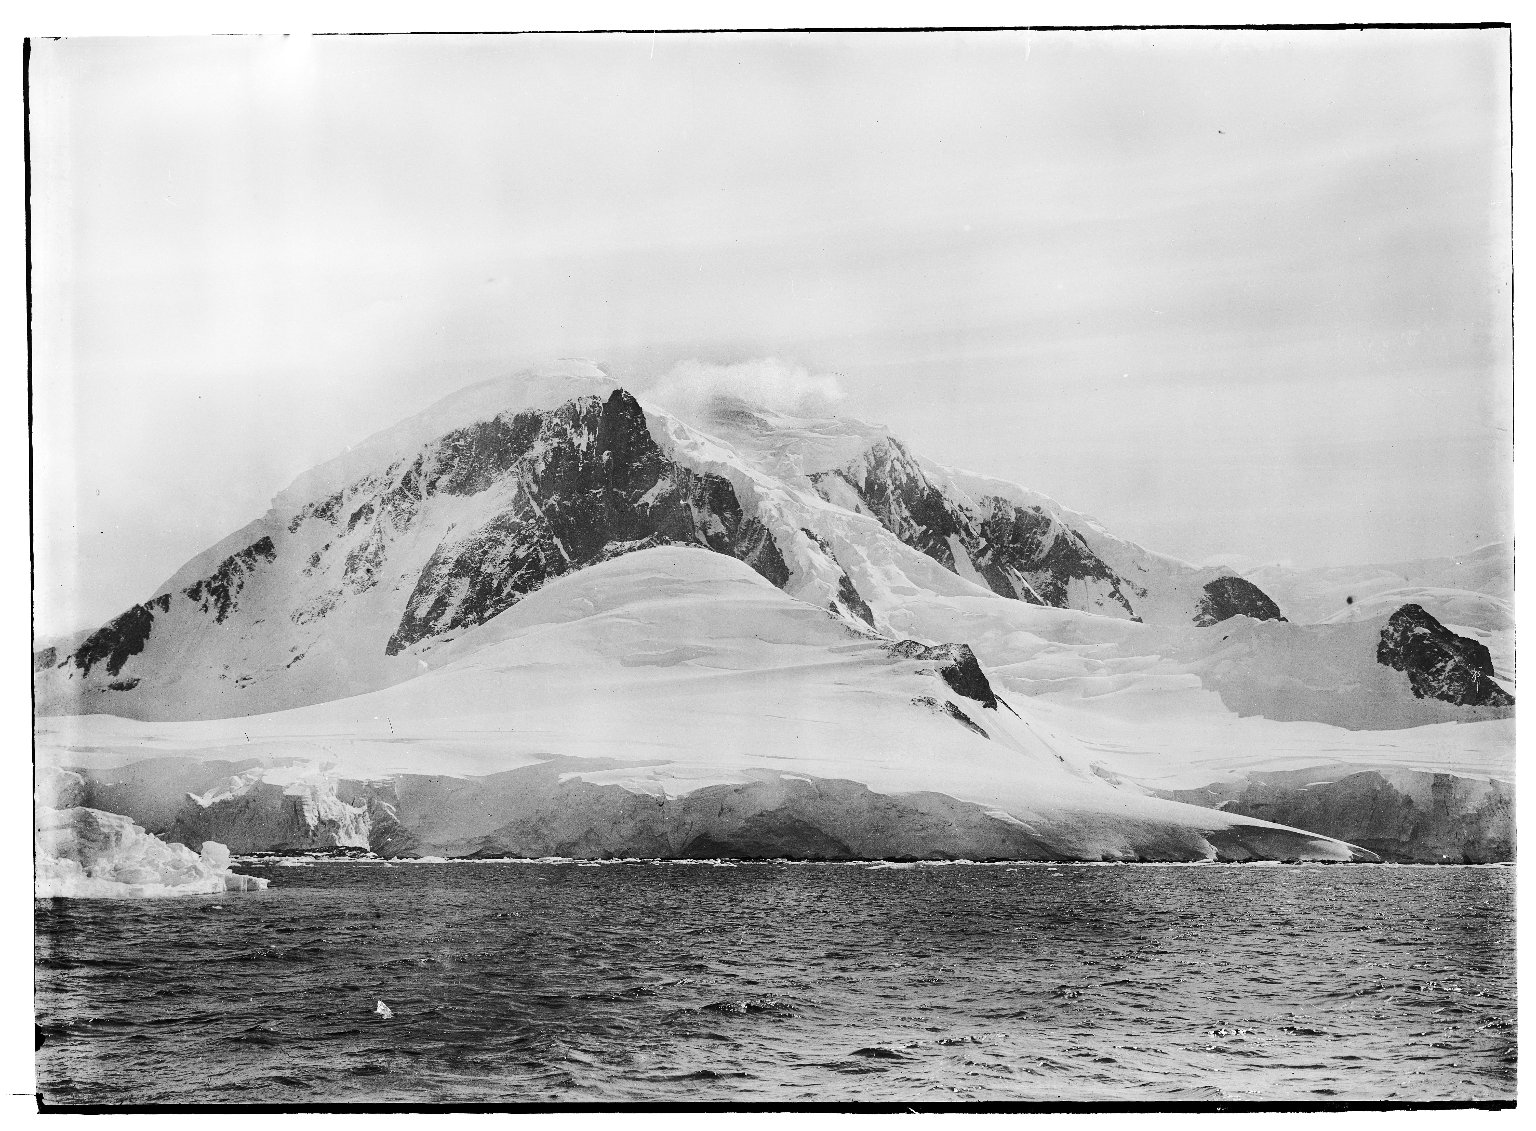 Prospecting Cruise to South Georgia and Antartica, 1913-14, P.098